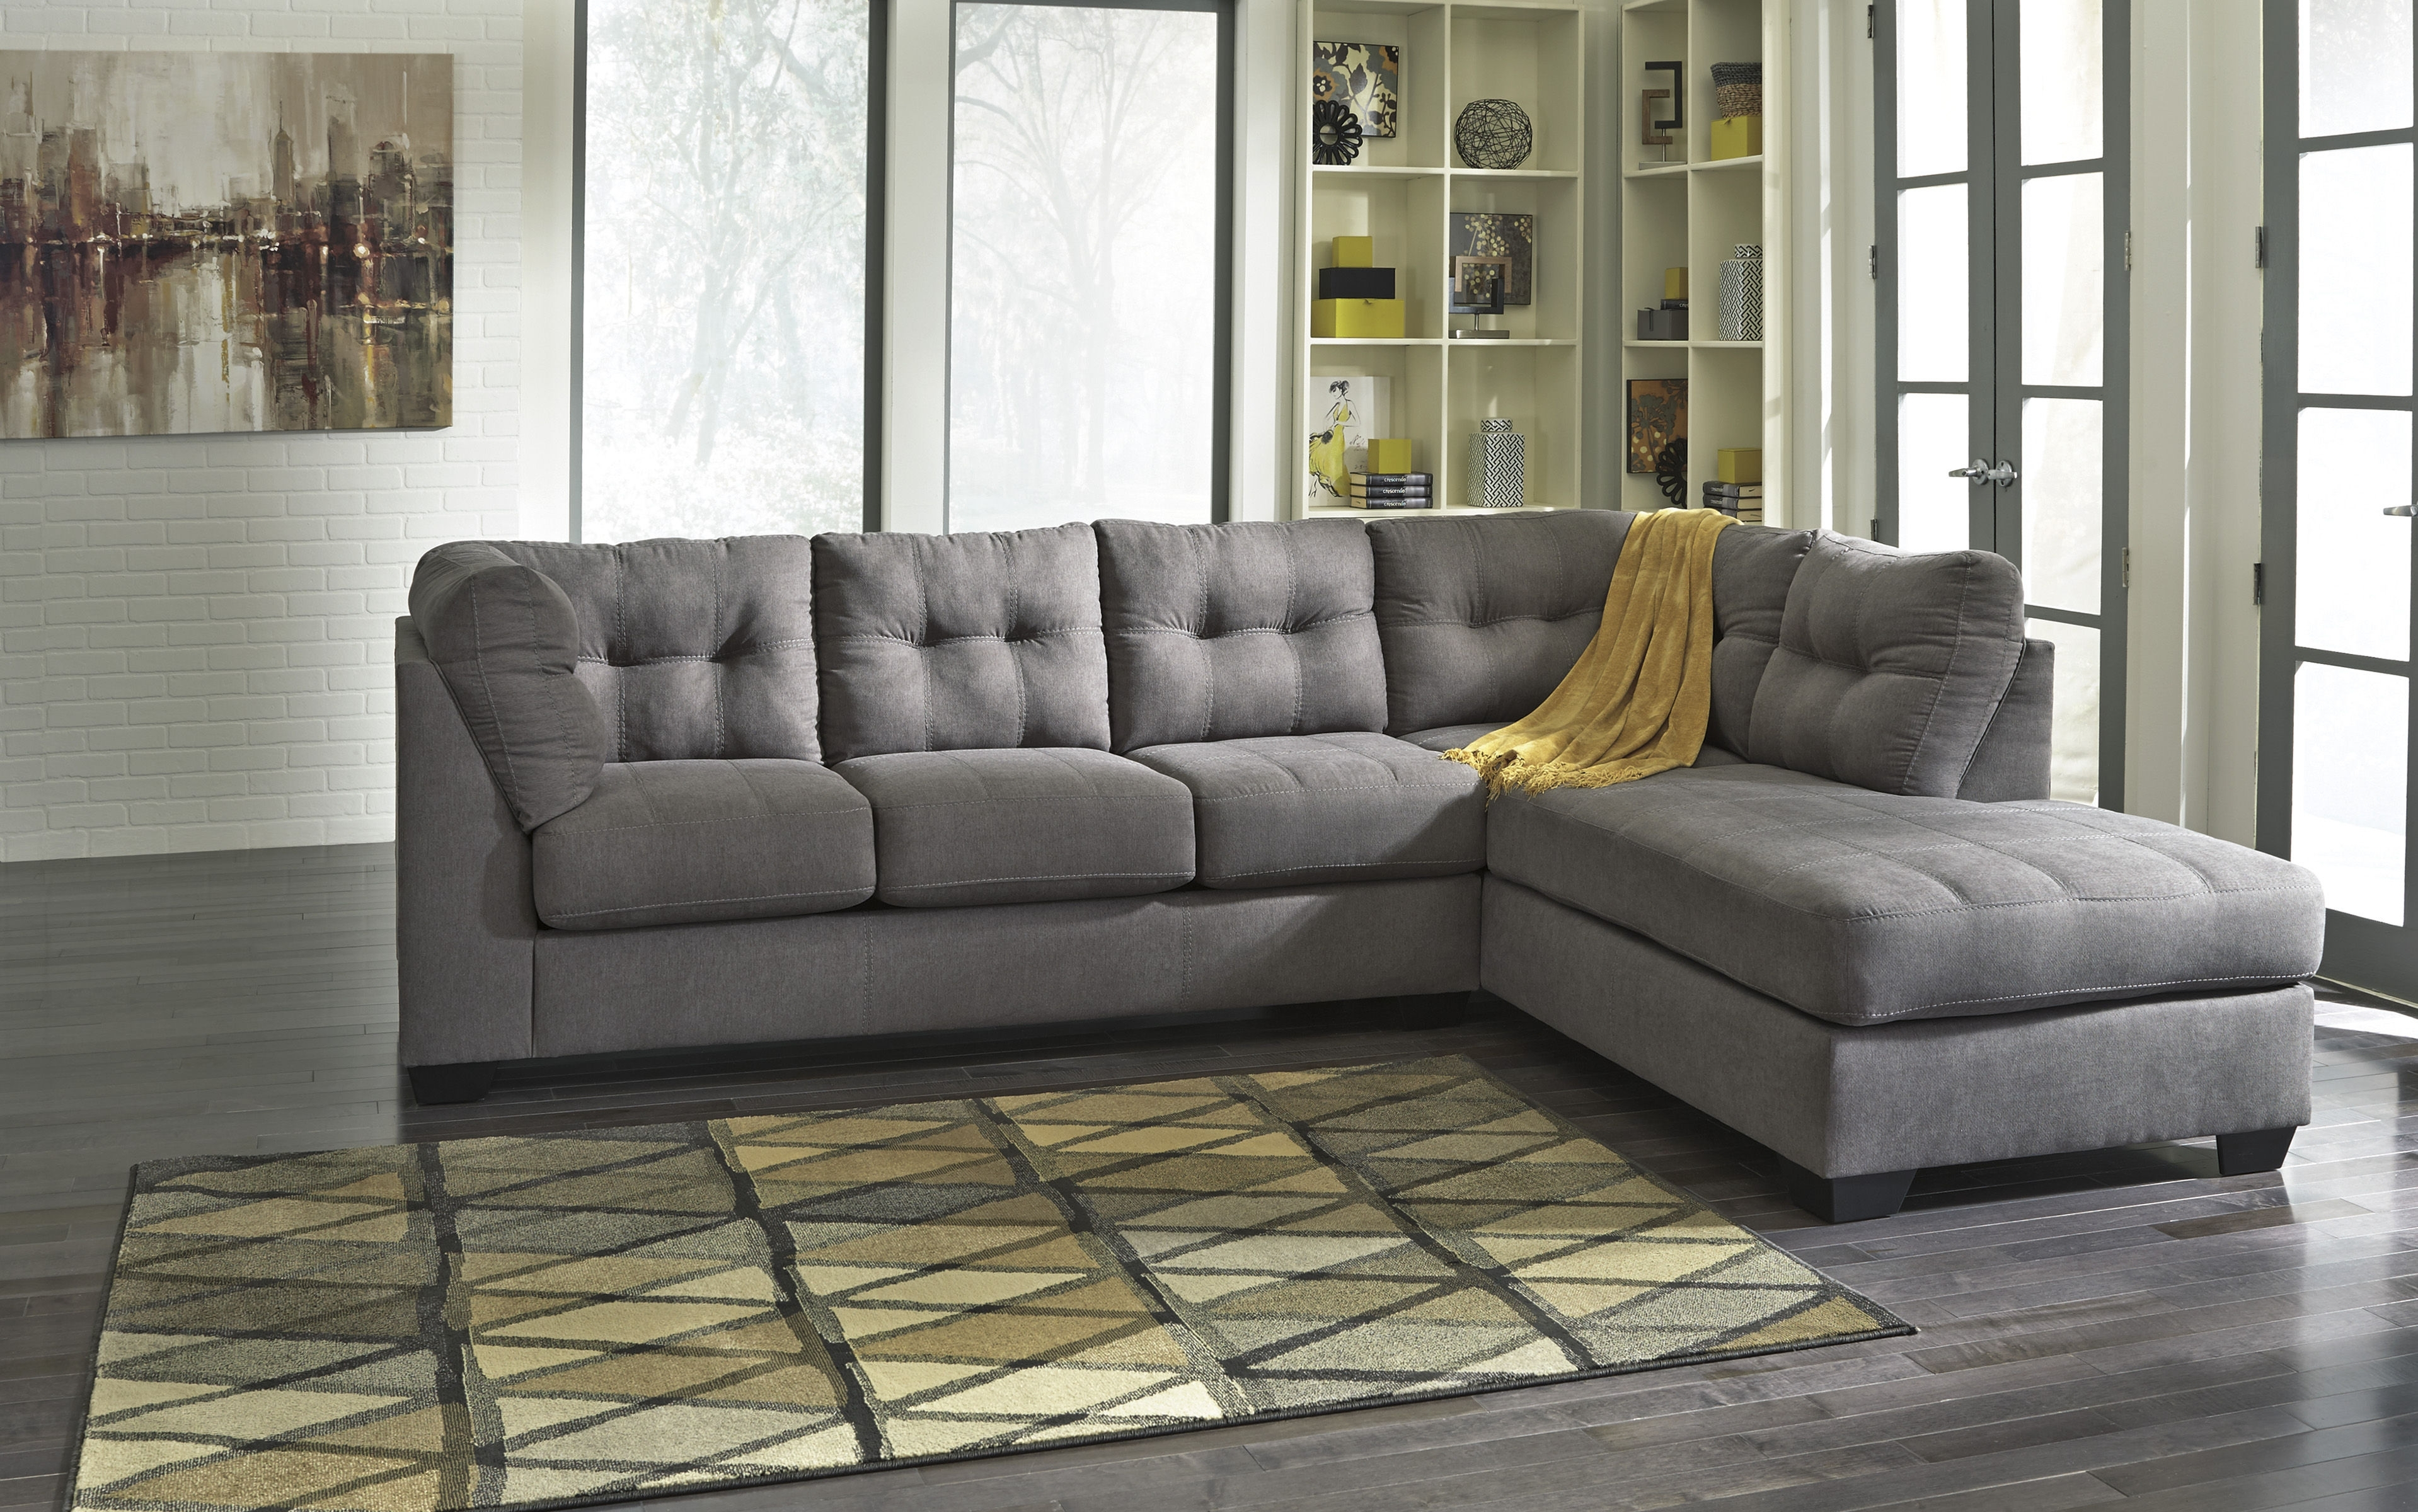 Ashley Furniture Maier Charcoal Raf Chaise Sectional | The Classy Home within Lucy Dark Grey 2 Piece Sleeper Sectionals With Laf Chaise (Image 5 of 30)